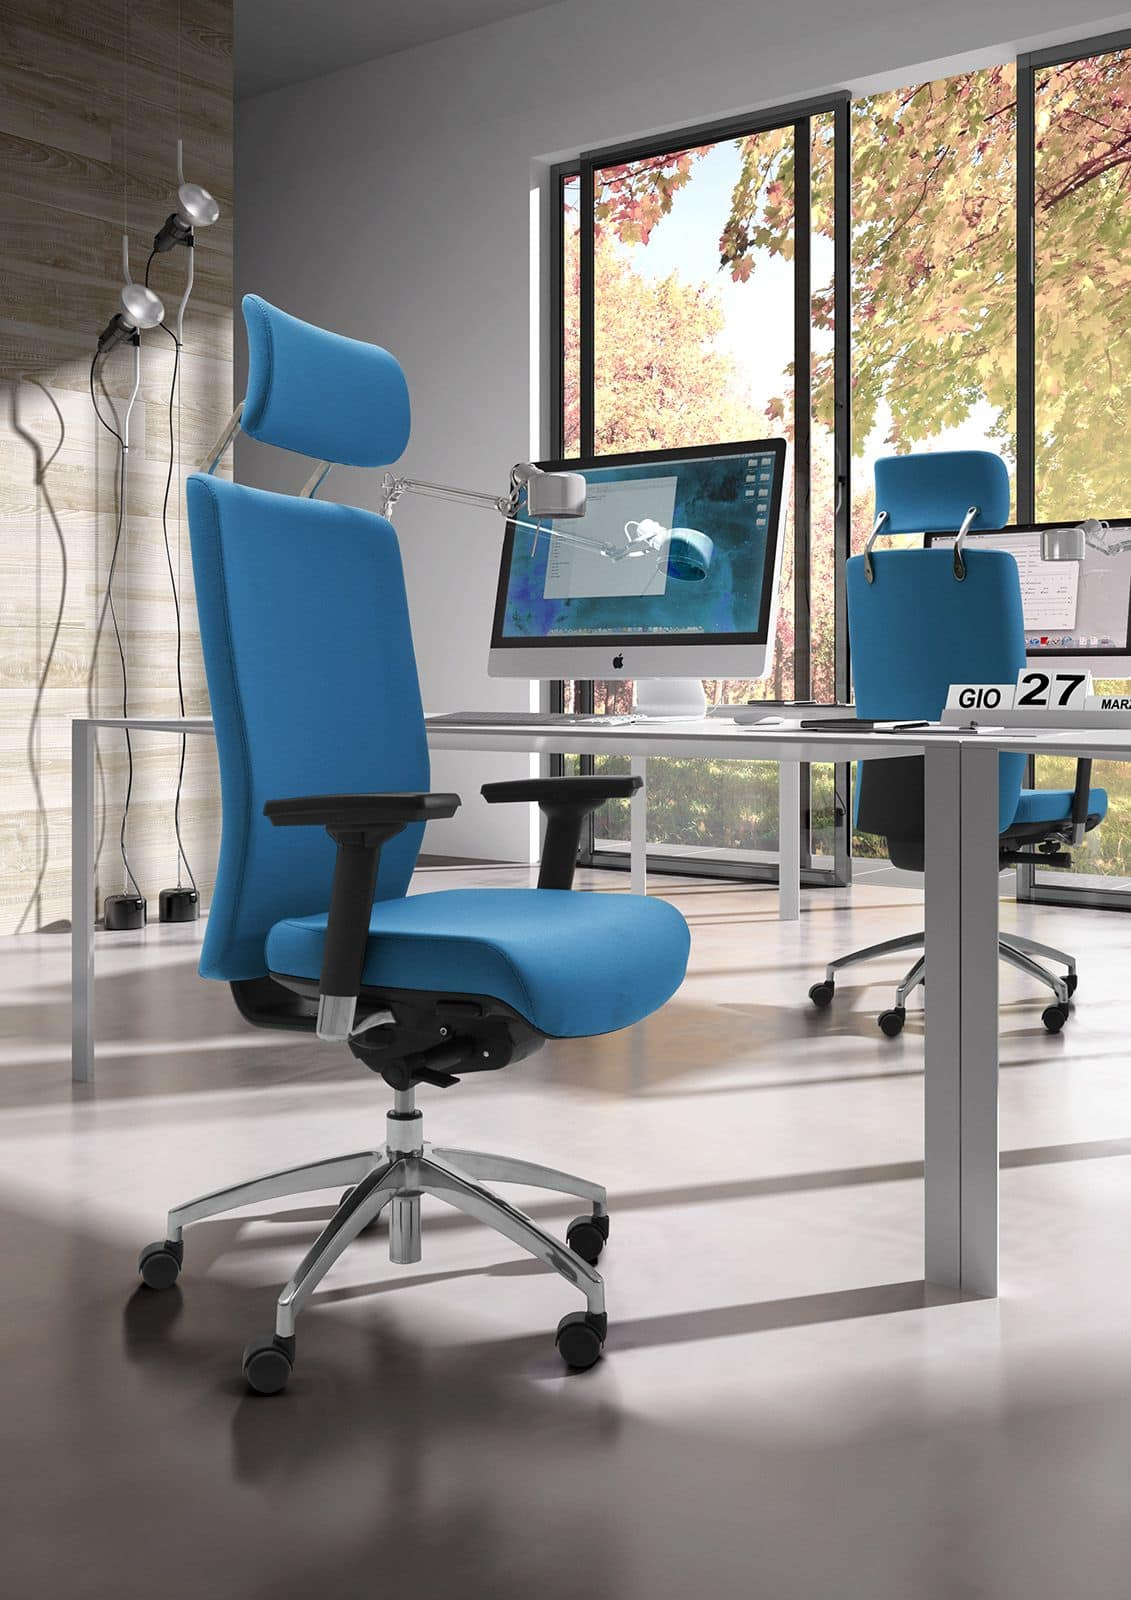 office chair wiki. Wiki Upholstered , Operational Office Chair With Armrests And Headrests A